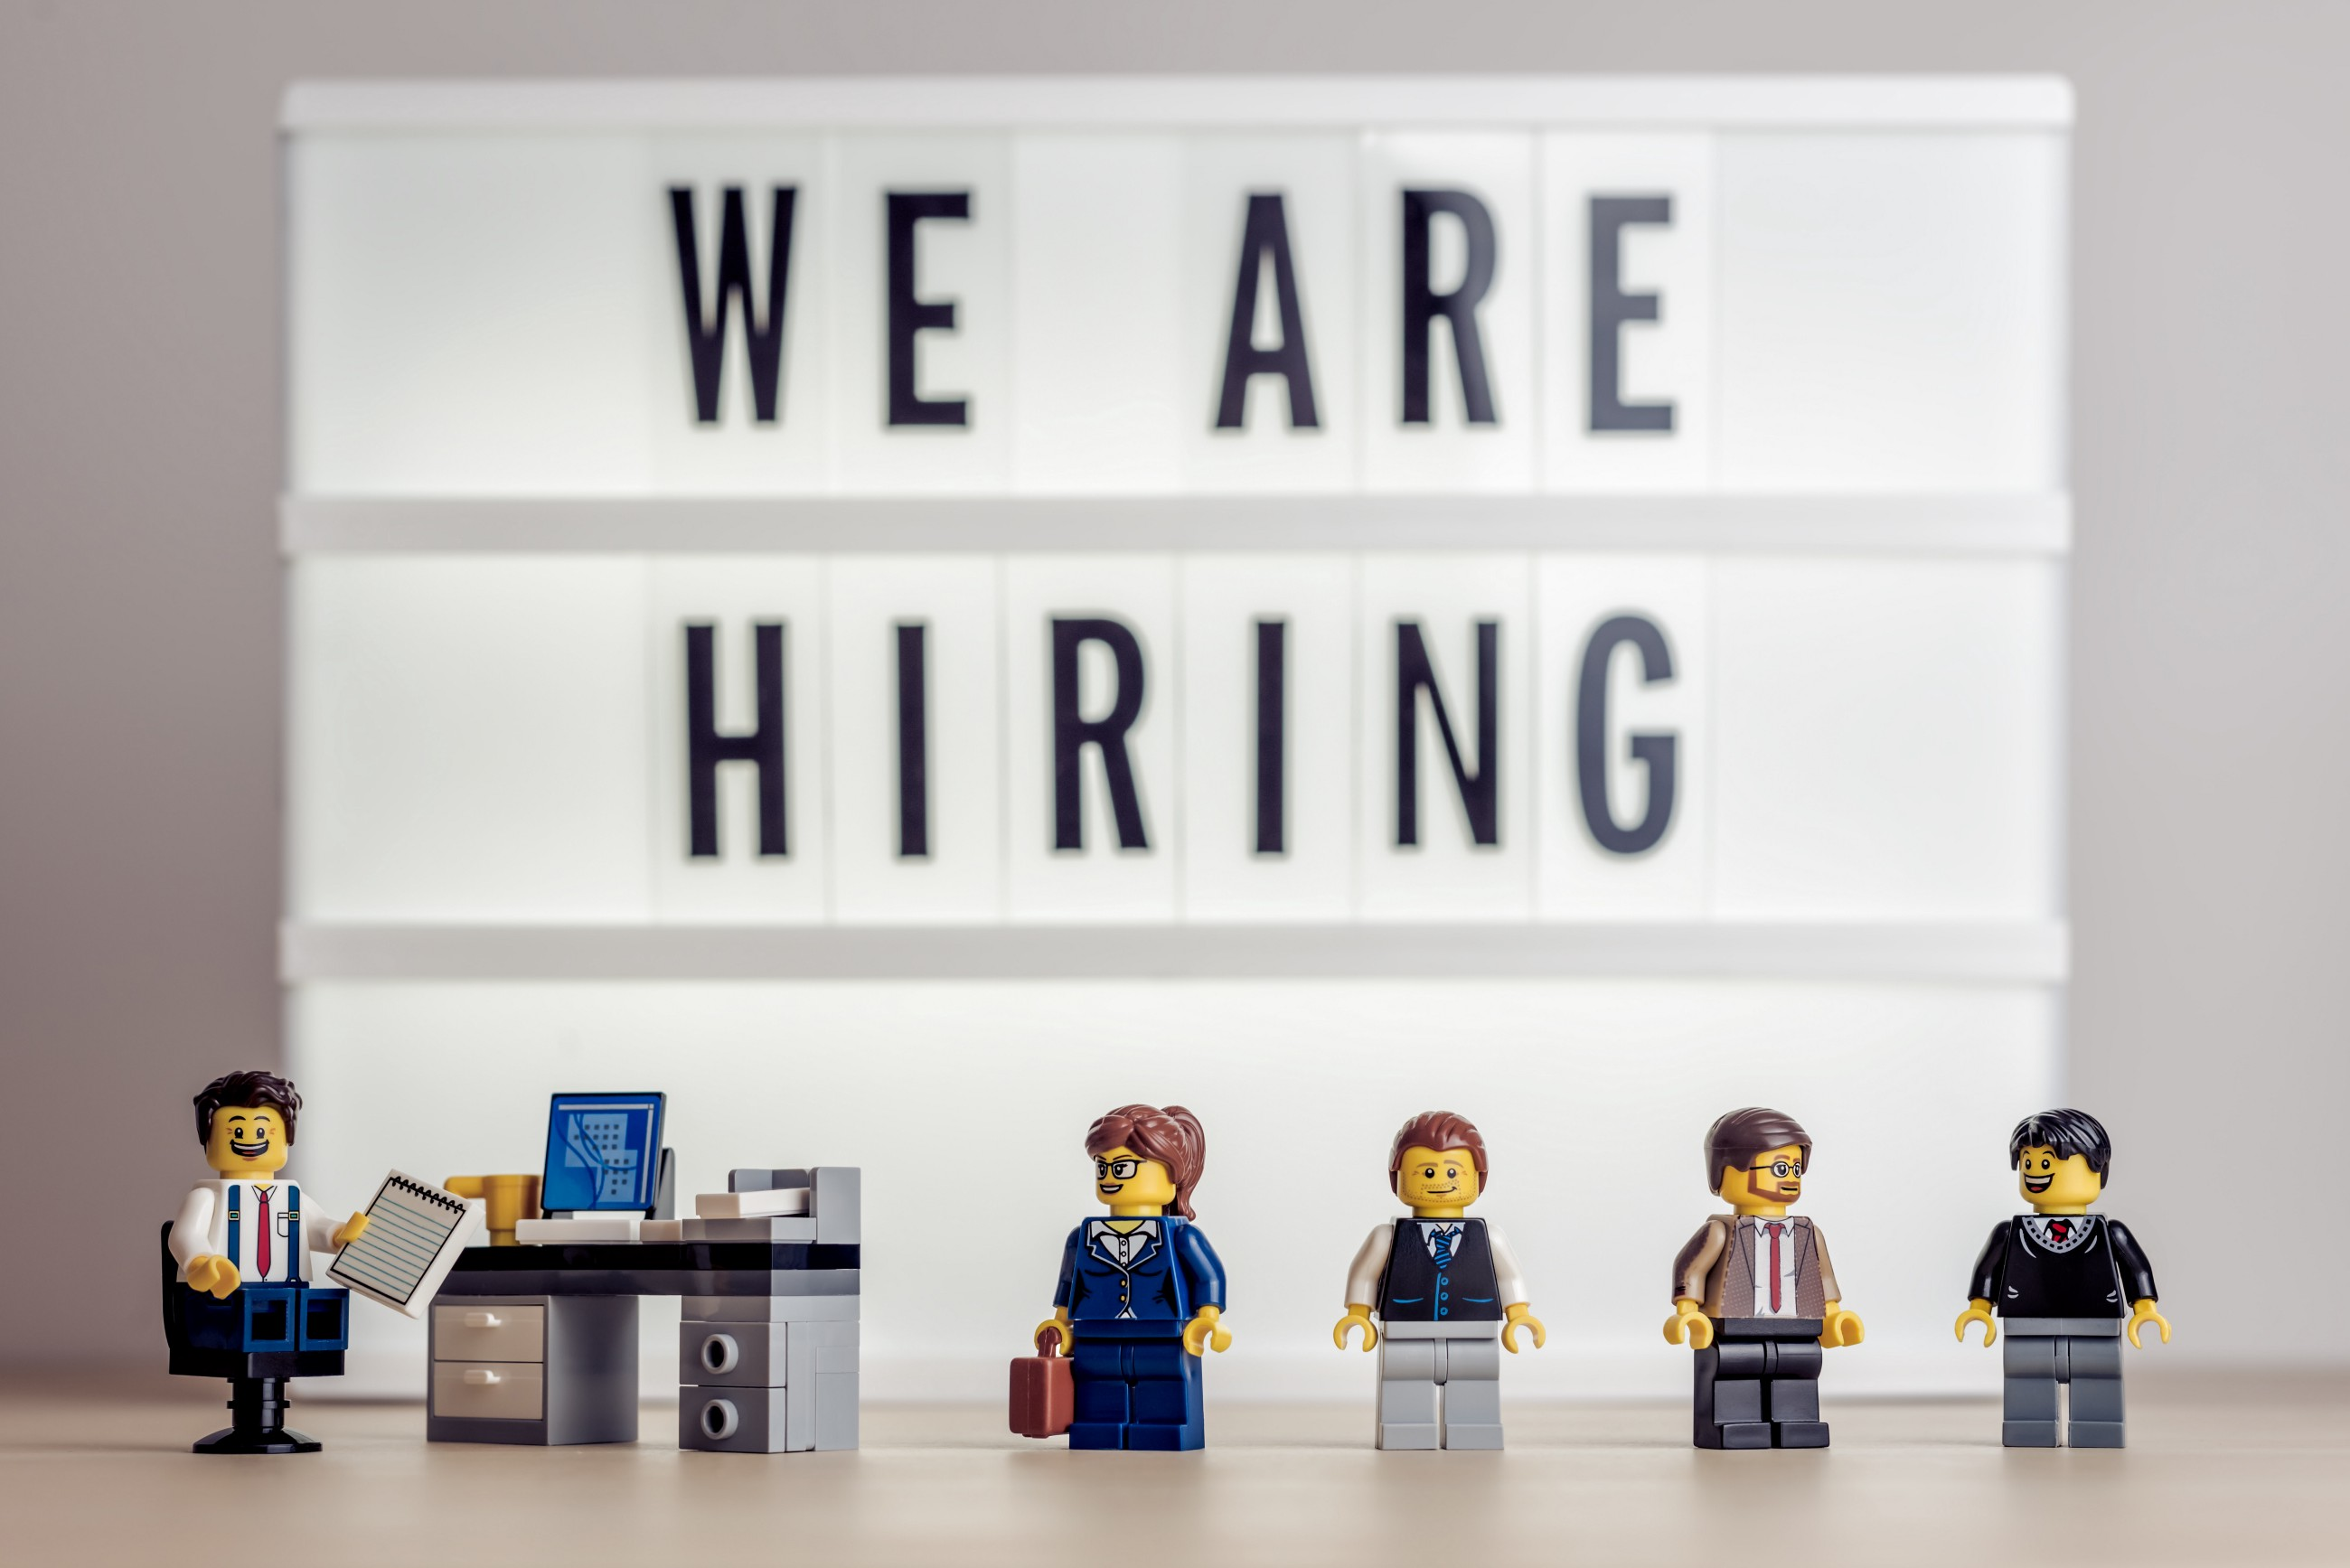 How to Hire Developers if You Don't Have Recruiters - By